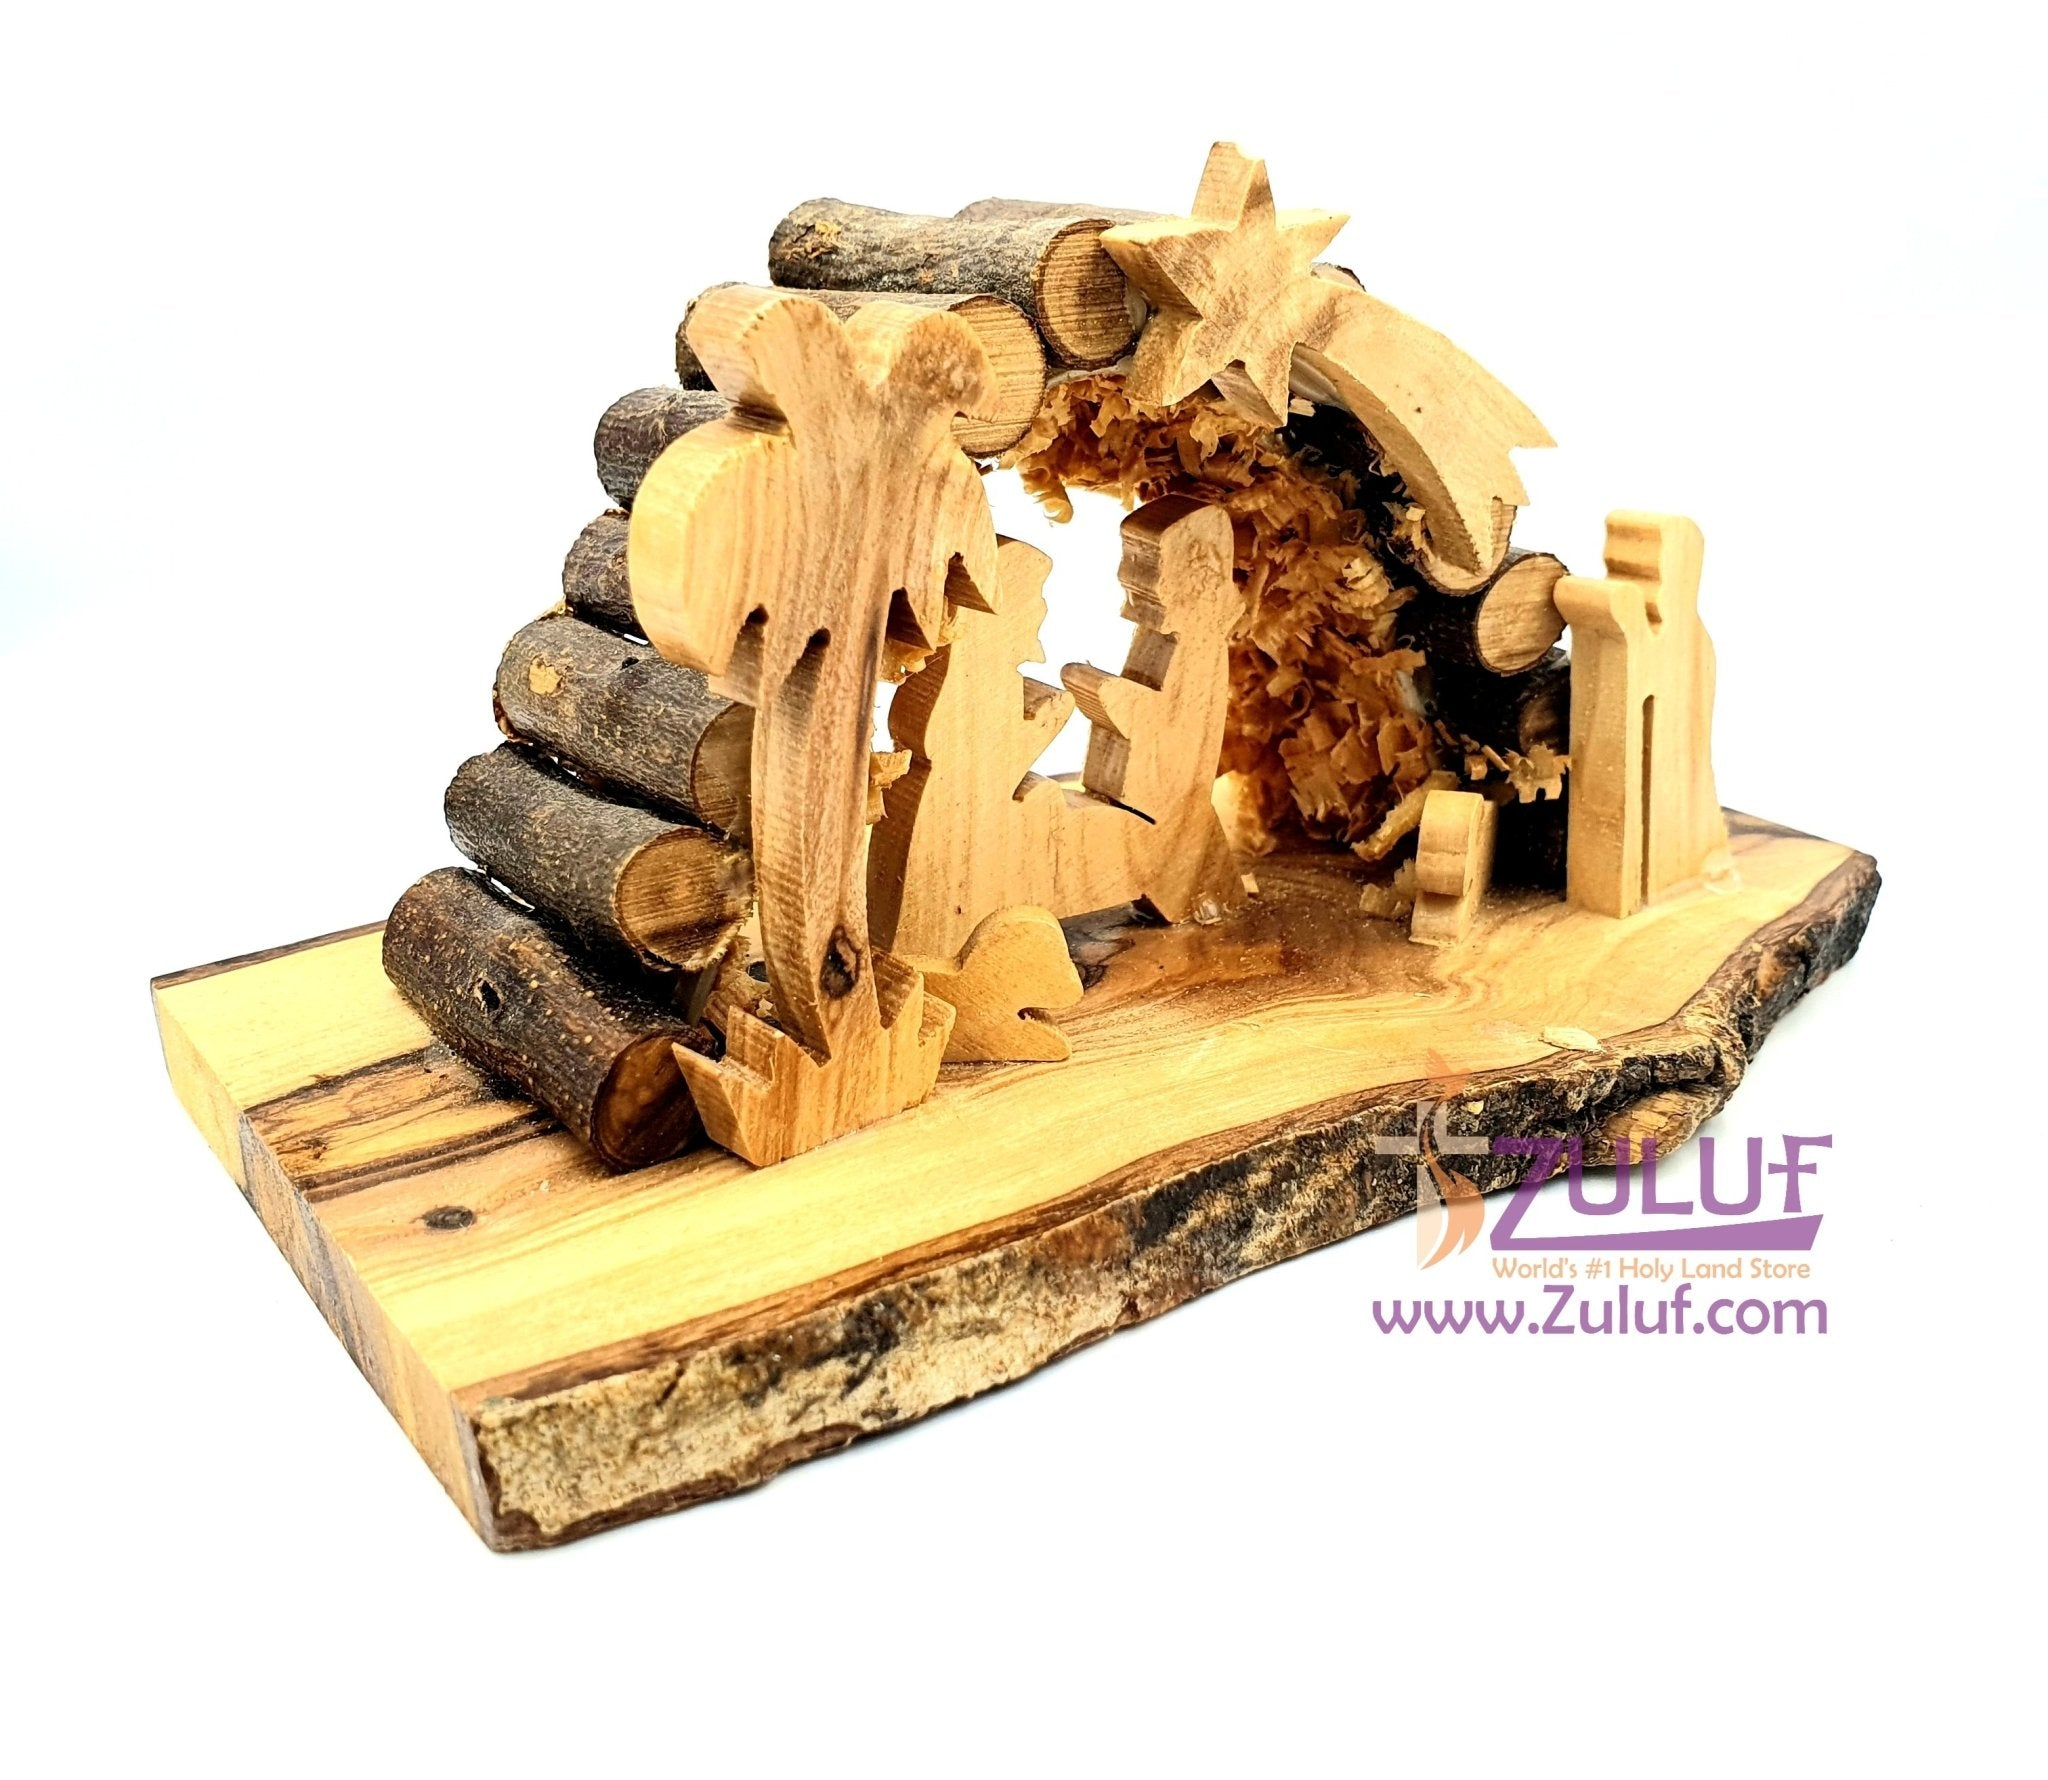 Bethlehem Nativity olive wood carvings from the holy land NAT070 - Zuluf